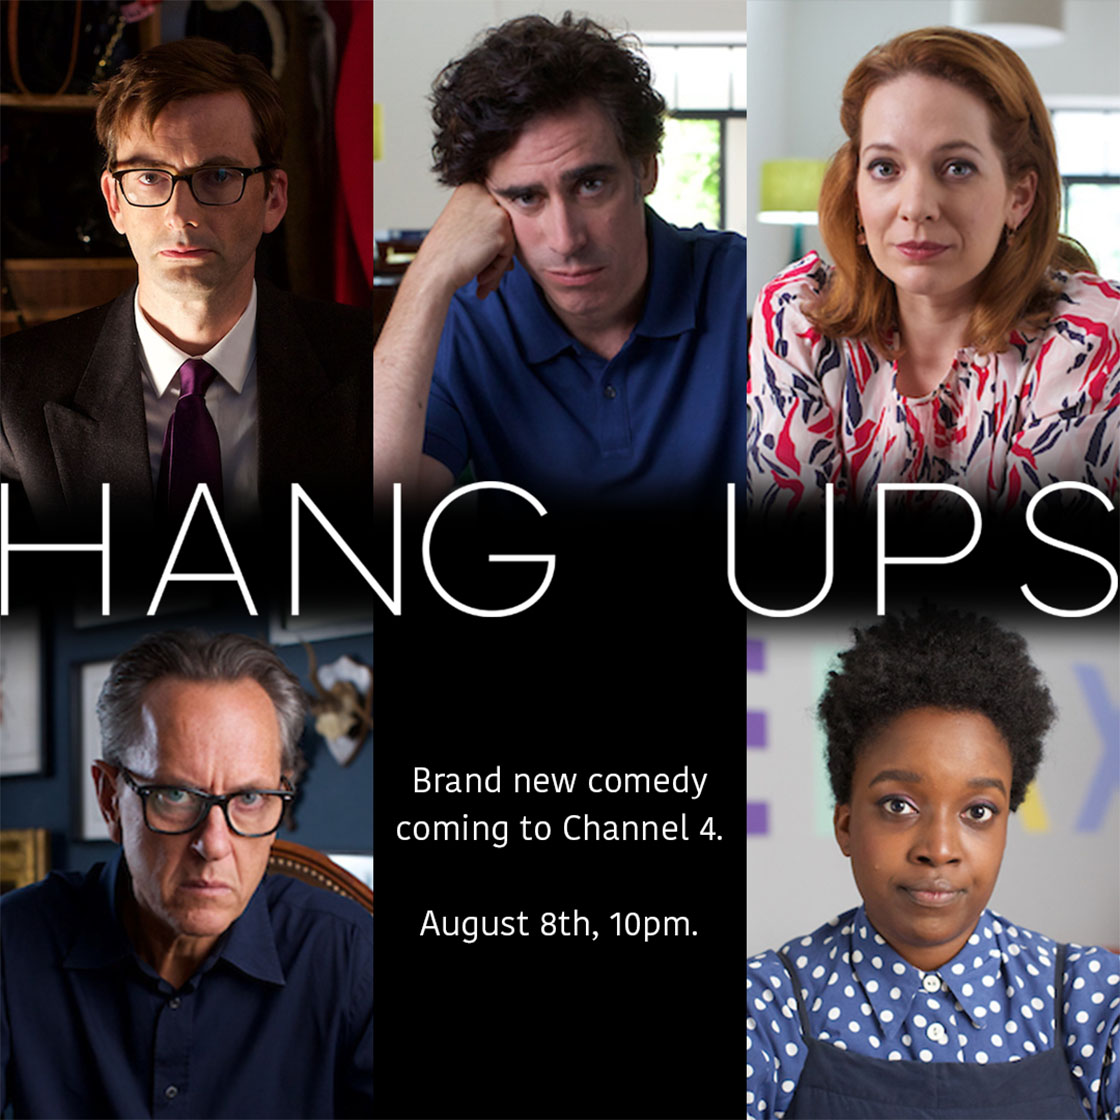 HANG UPS TRAILER! BRAND NEW COMEDY STARTS WED 8TH AUG, 10PM ON CHANNEL 4